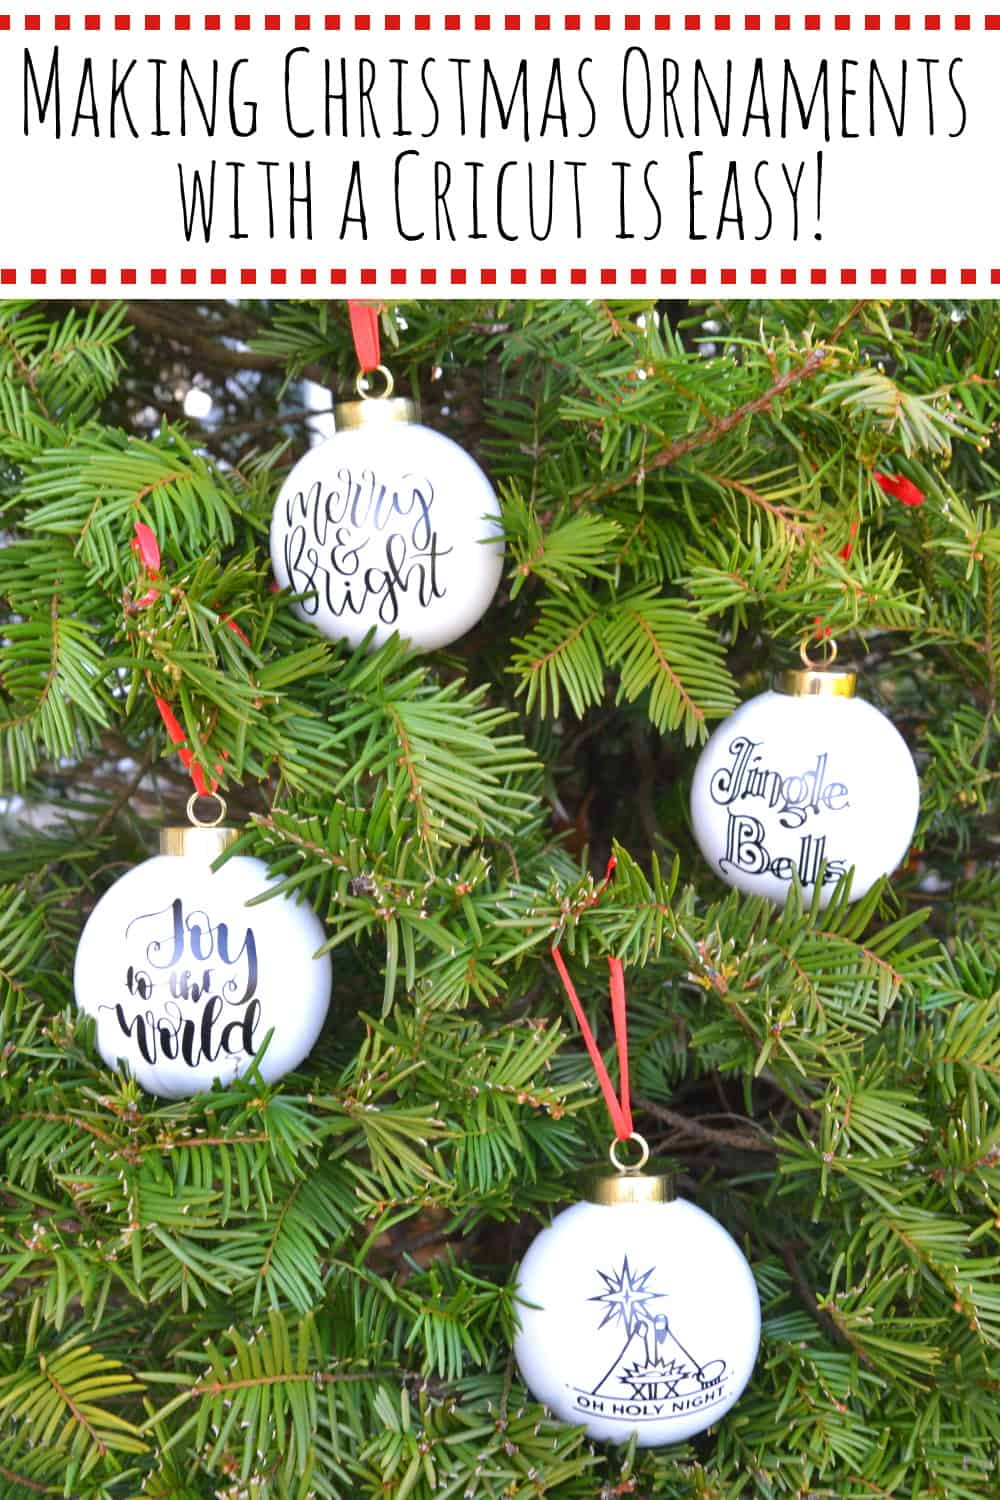 Making Christmas ornaments with Cricut is super easy- Start with ceramic Christmas ornaments and apply a Christmas image in vinyl and you've got a great, personalized Christmas ornament. #makingchristmasornamentswithcricut #diychristmasornaments #cricutprojects